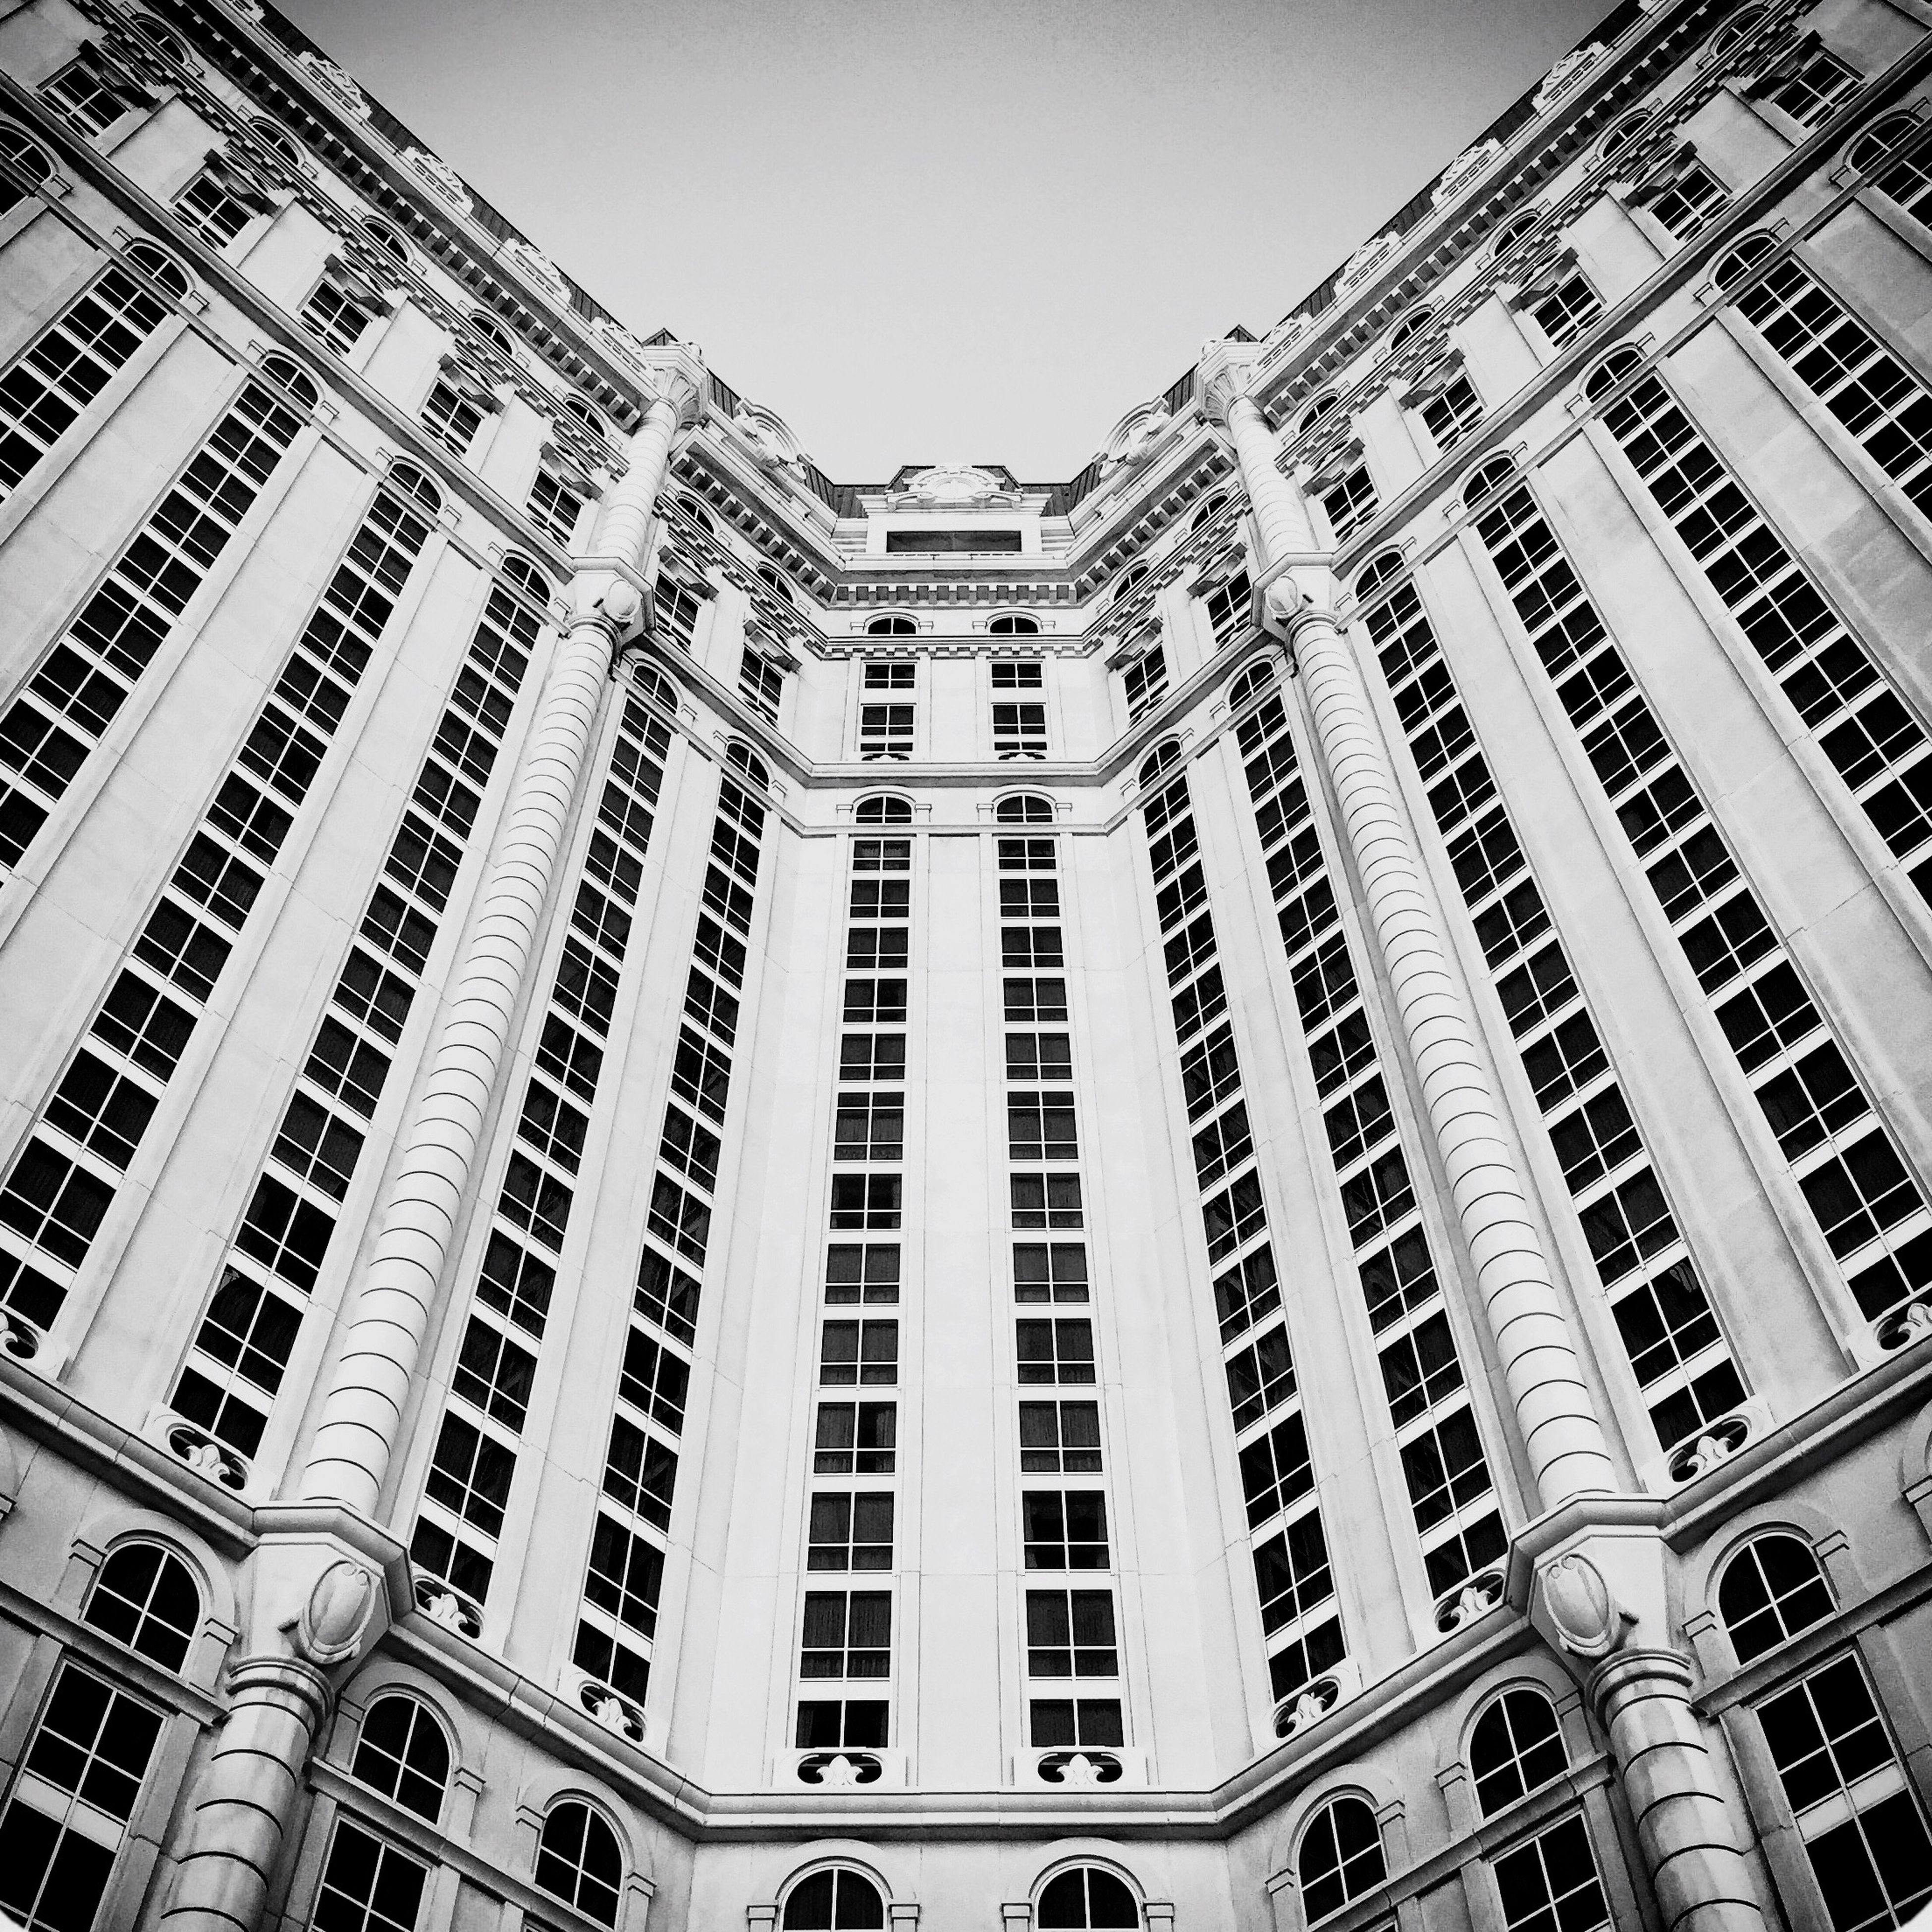 architecture, building exterior, built structure, low angle view, window, city, building, clear sky, residential building, modern, apartment, residential structure, day, sky, outdoors, tall - high, no people, office building, facade, glass - material